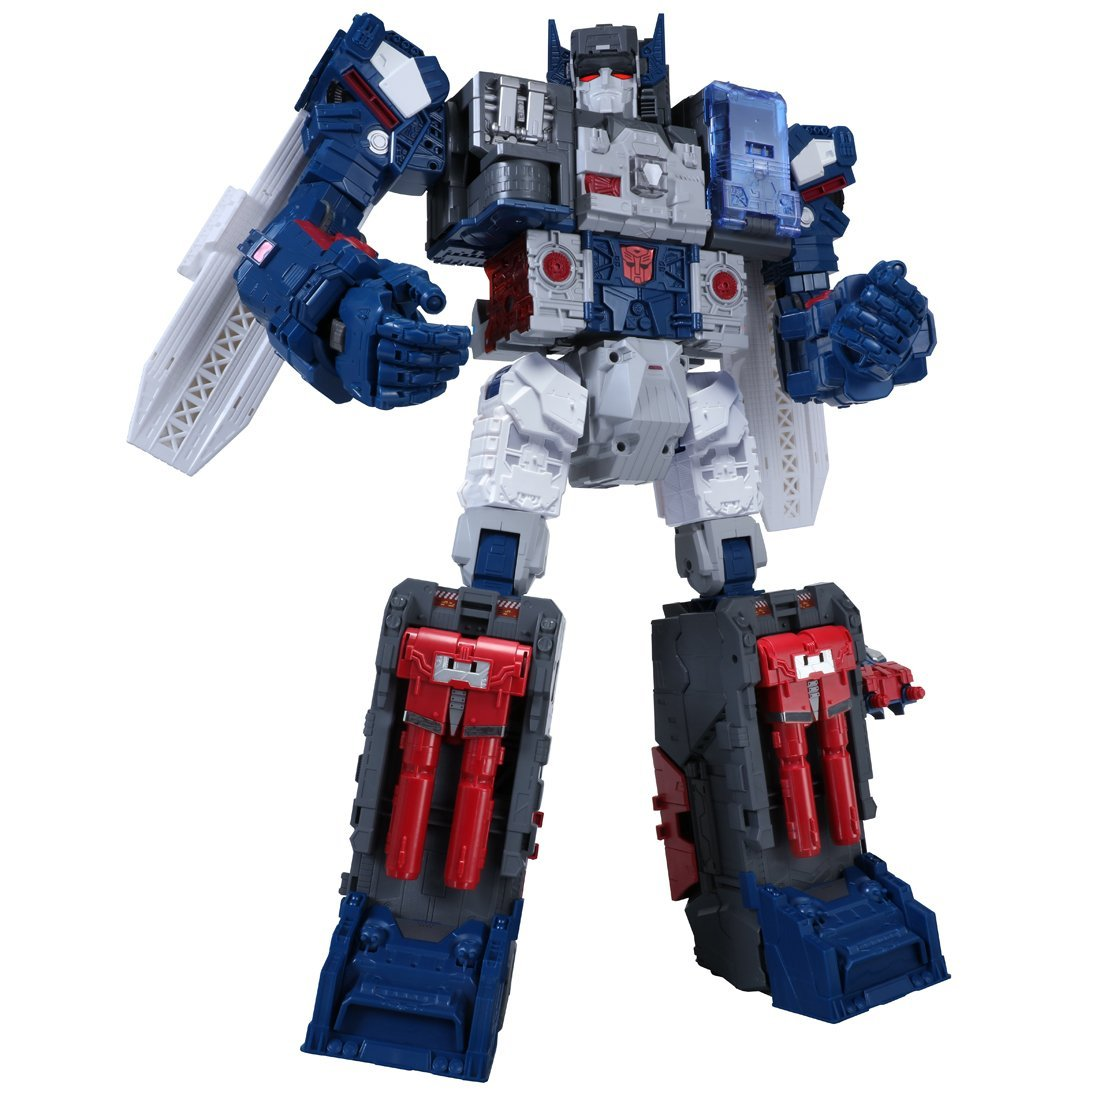 Transformers Legends LG31 Fortress Maximus Action Figure by Takara